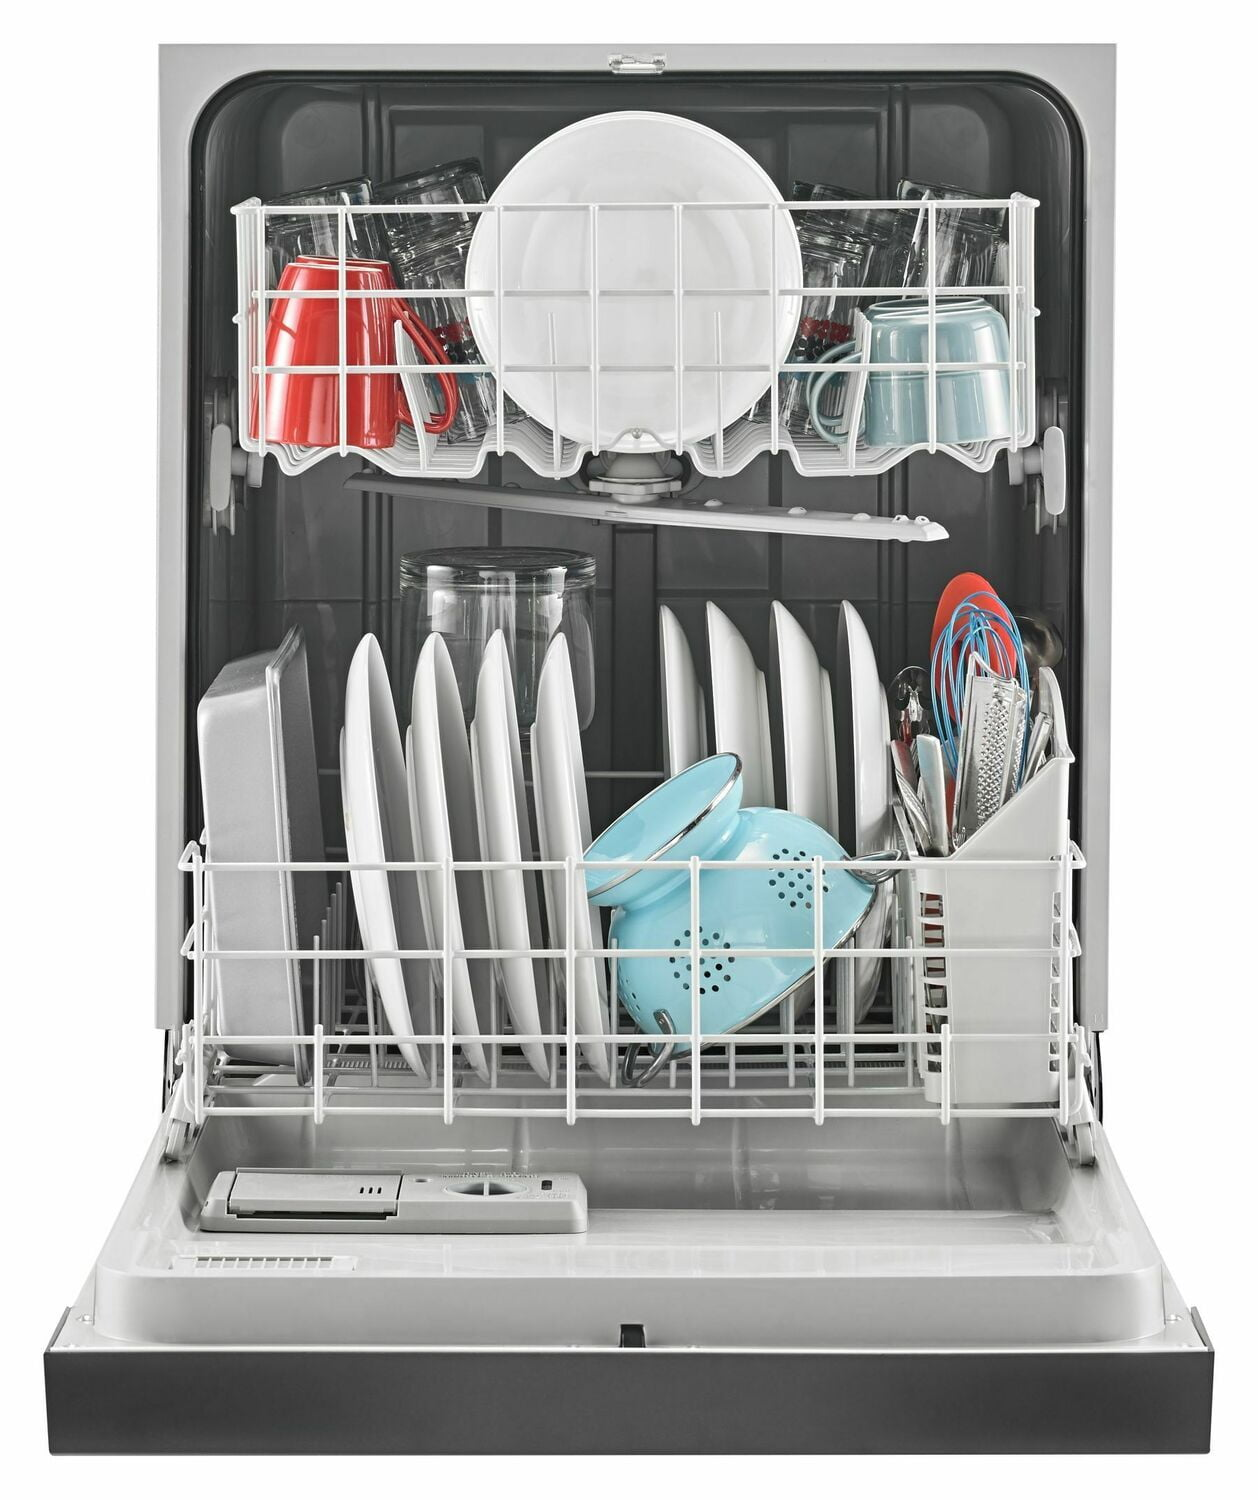 Load image into Gallery viewer, Amana ADB1400AGS Dishwasher With Triple Filter Wash System - Stainless Steel